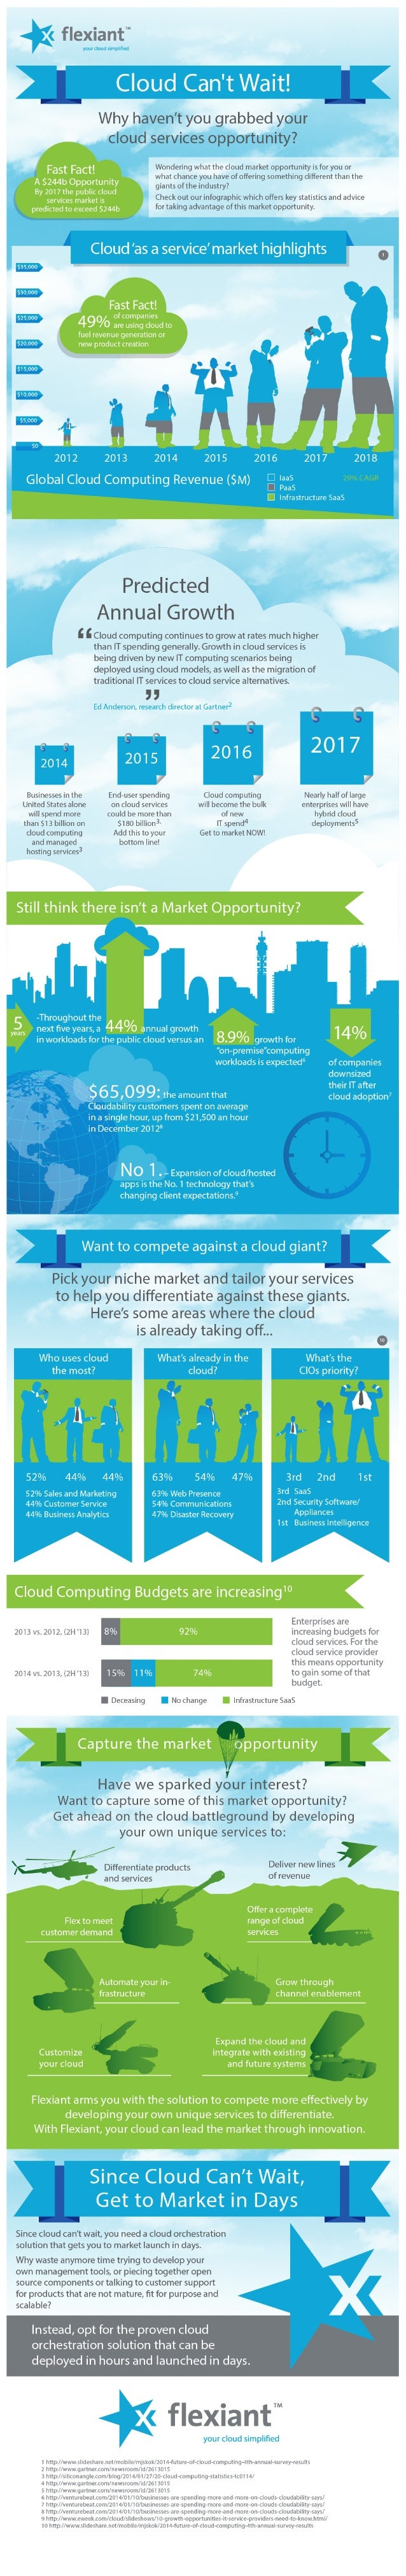 Flexiant Cloud can't wait infographic